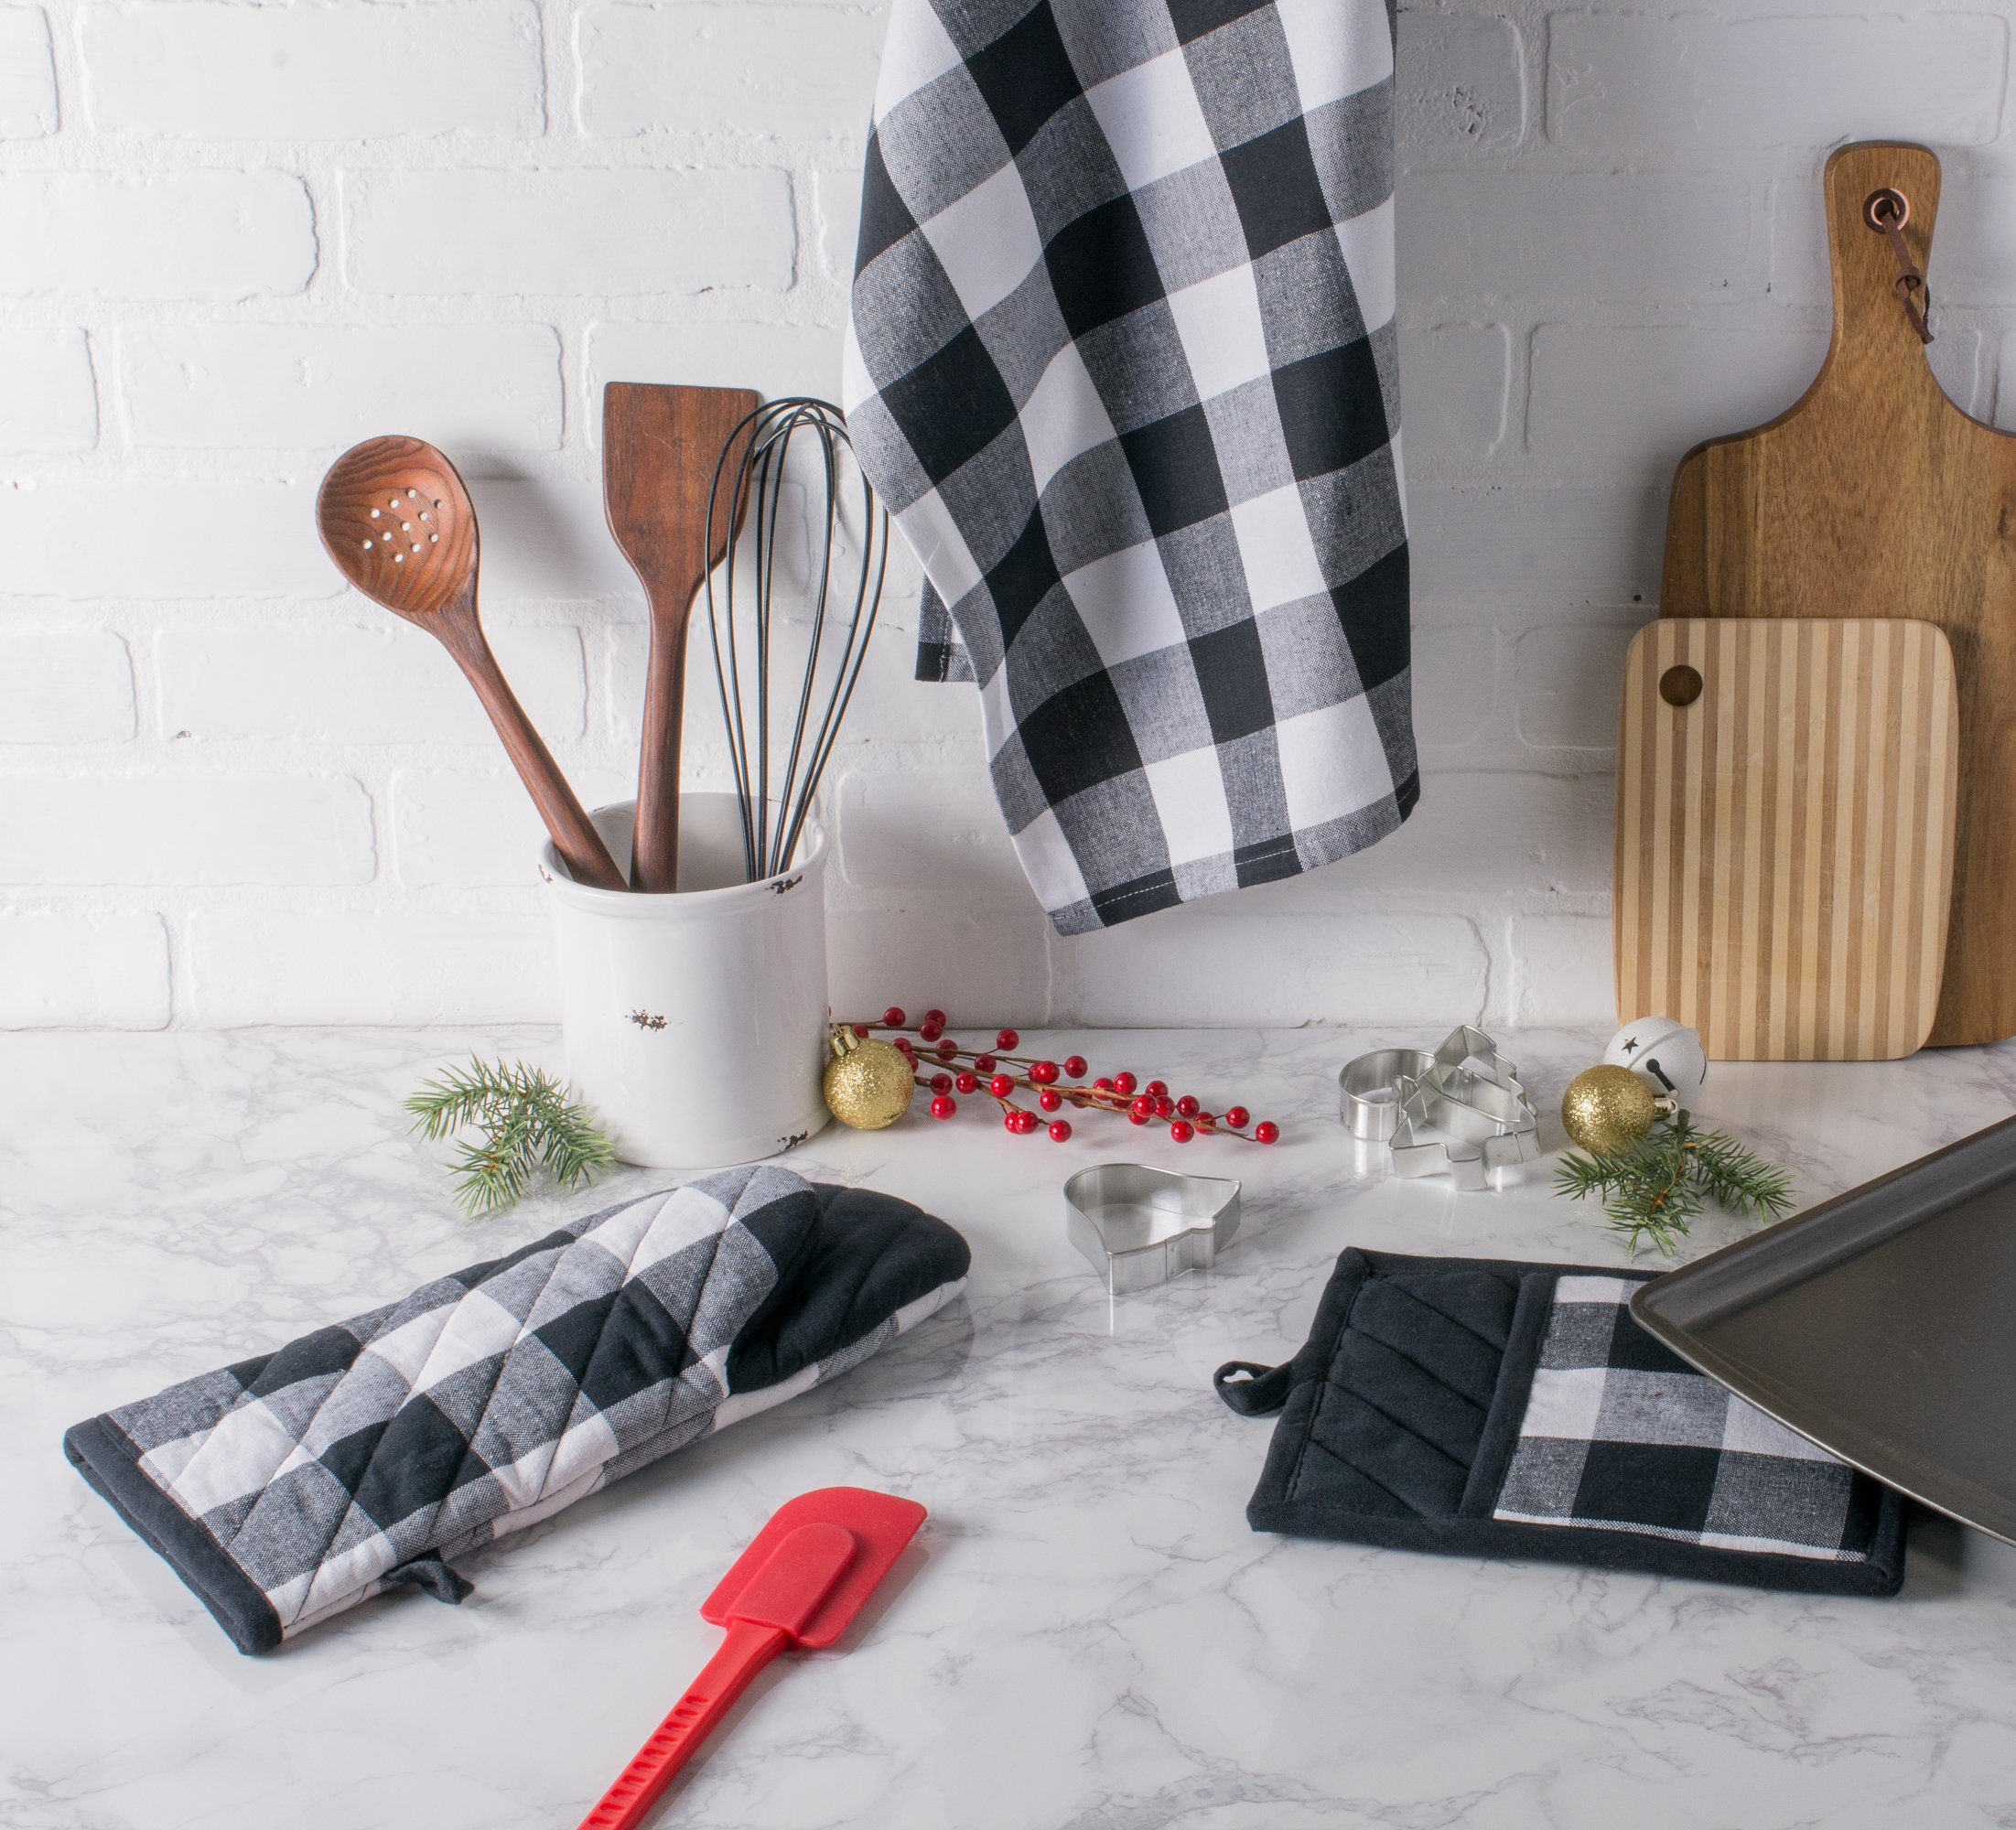 DII Cotton Buffalo Check Plaid Dish Towels, (20x30, Set of 3) Monogrammable Oversized Kitchen Towels for Drying, Cleaning, Cooking, Baking - Black & White by DII (Image #6)